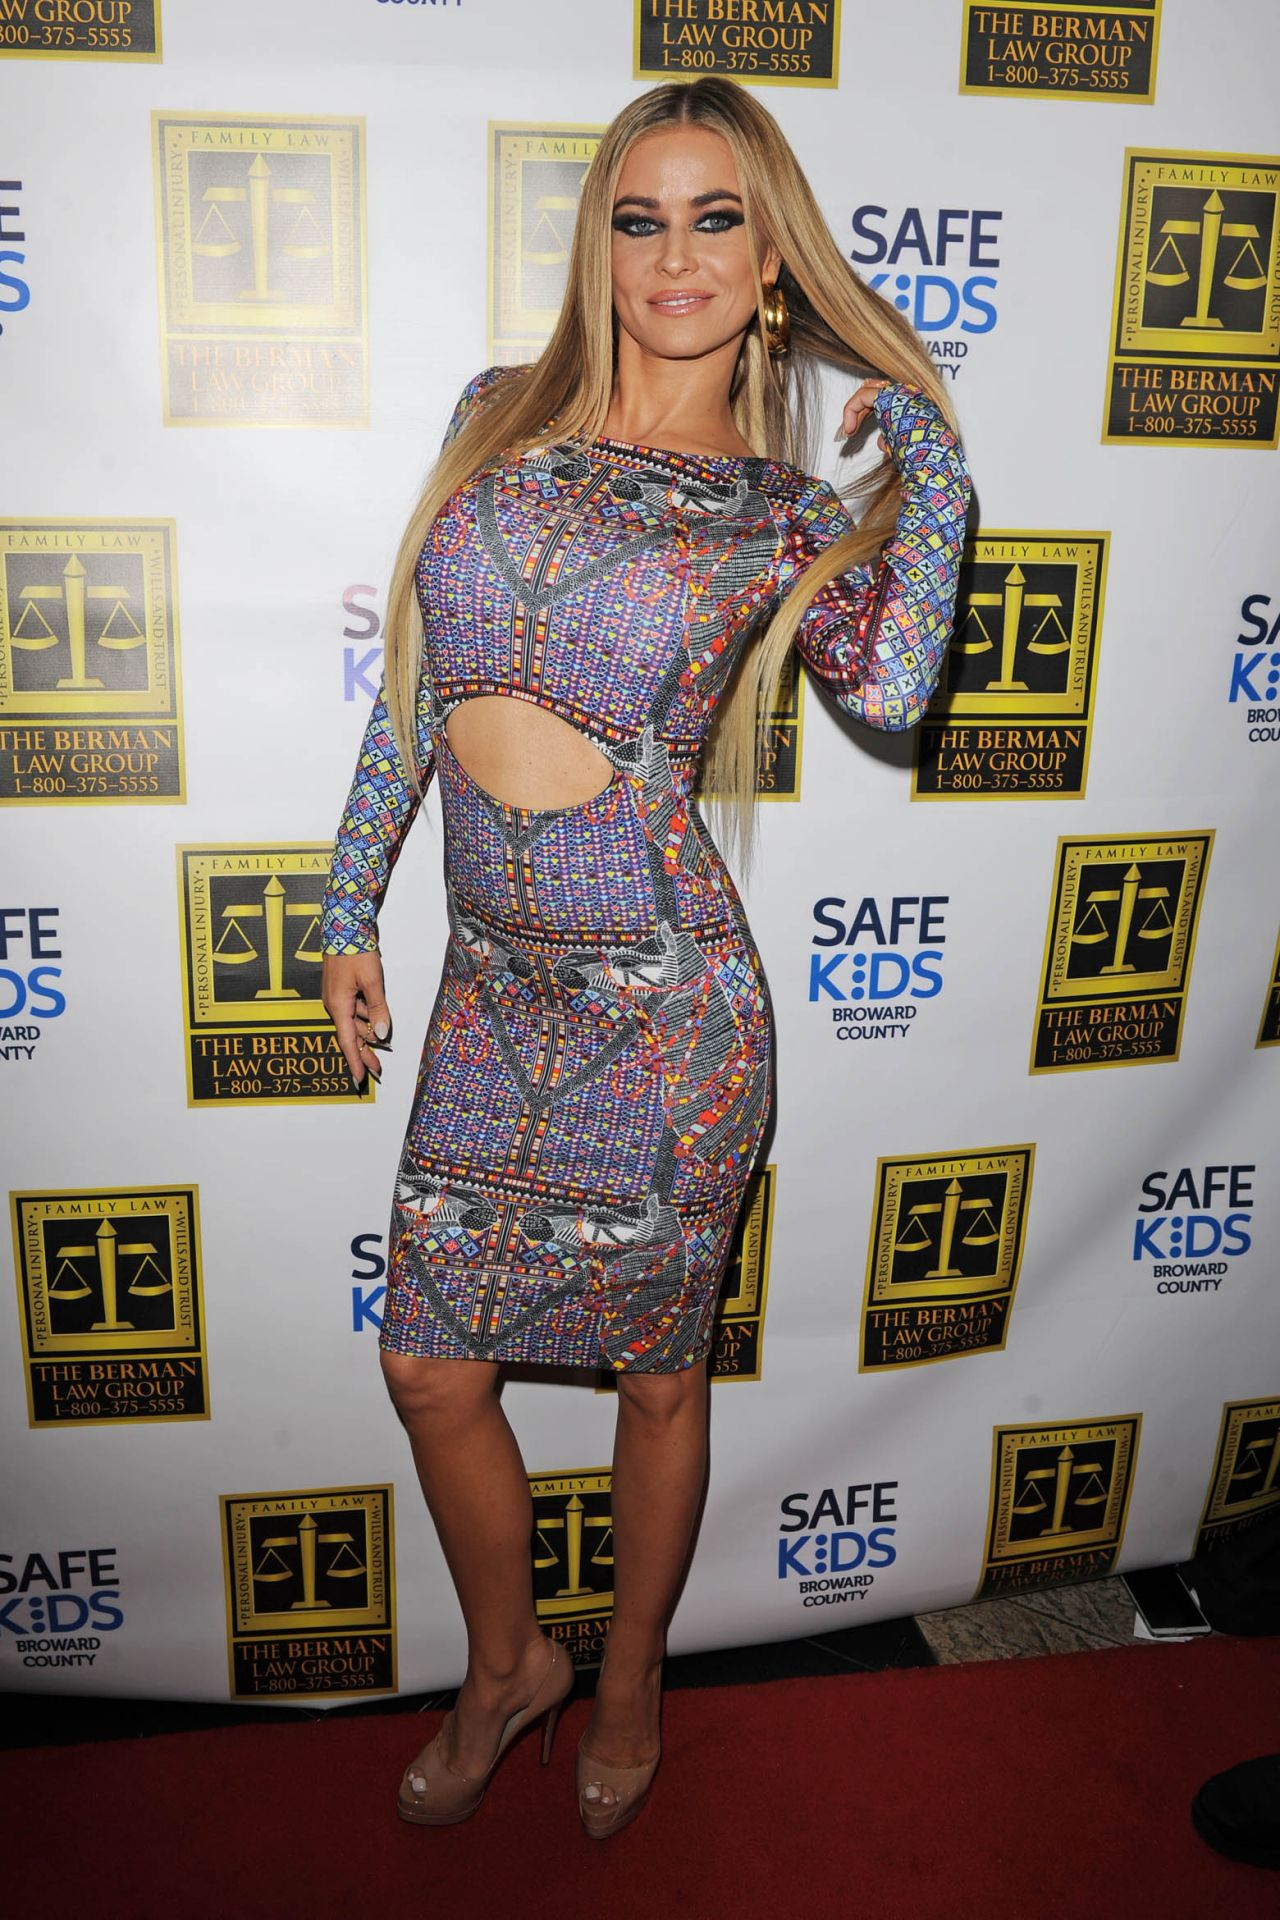 Carmen Electra Hosts Fright Night by Berman & Berman Law in Boca Raton, Oct. 2014